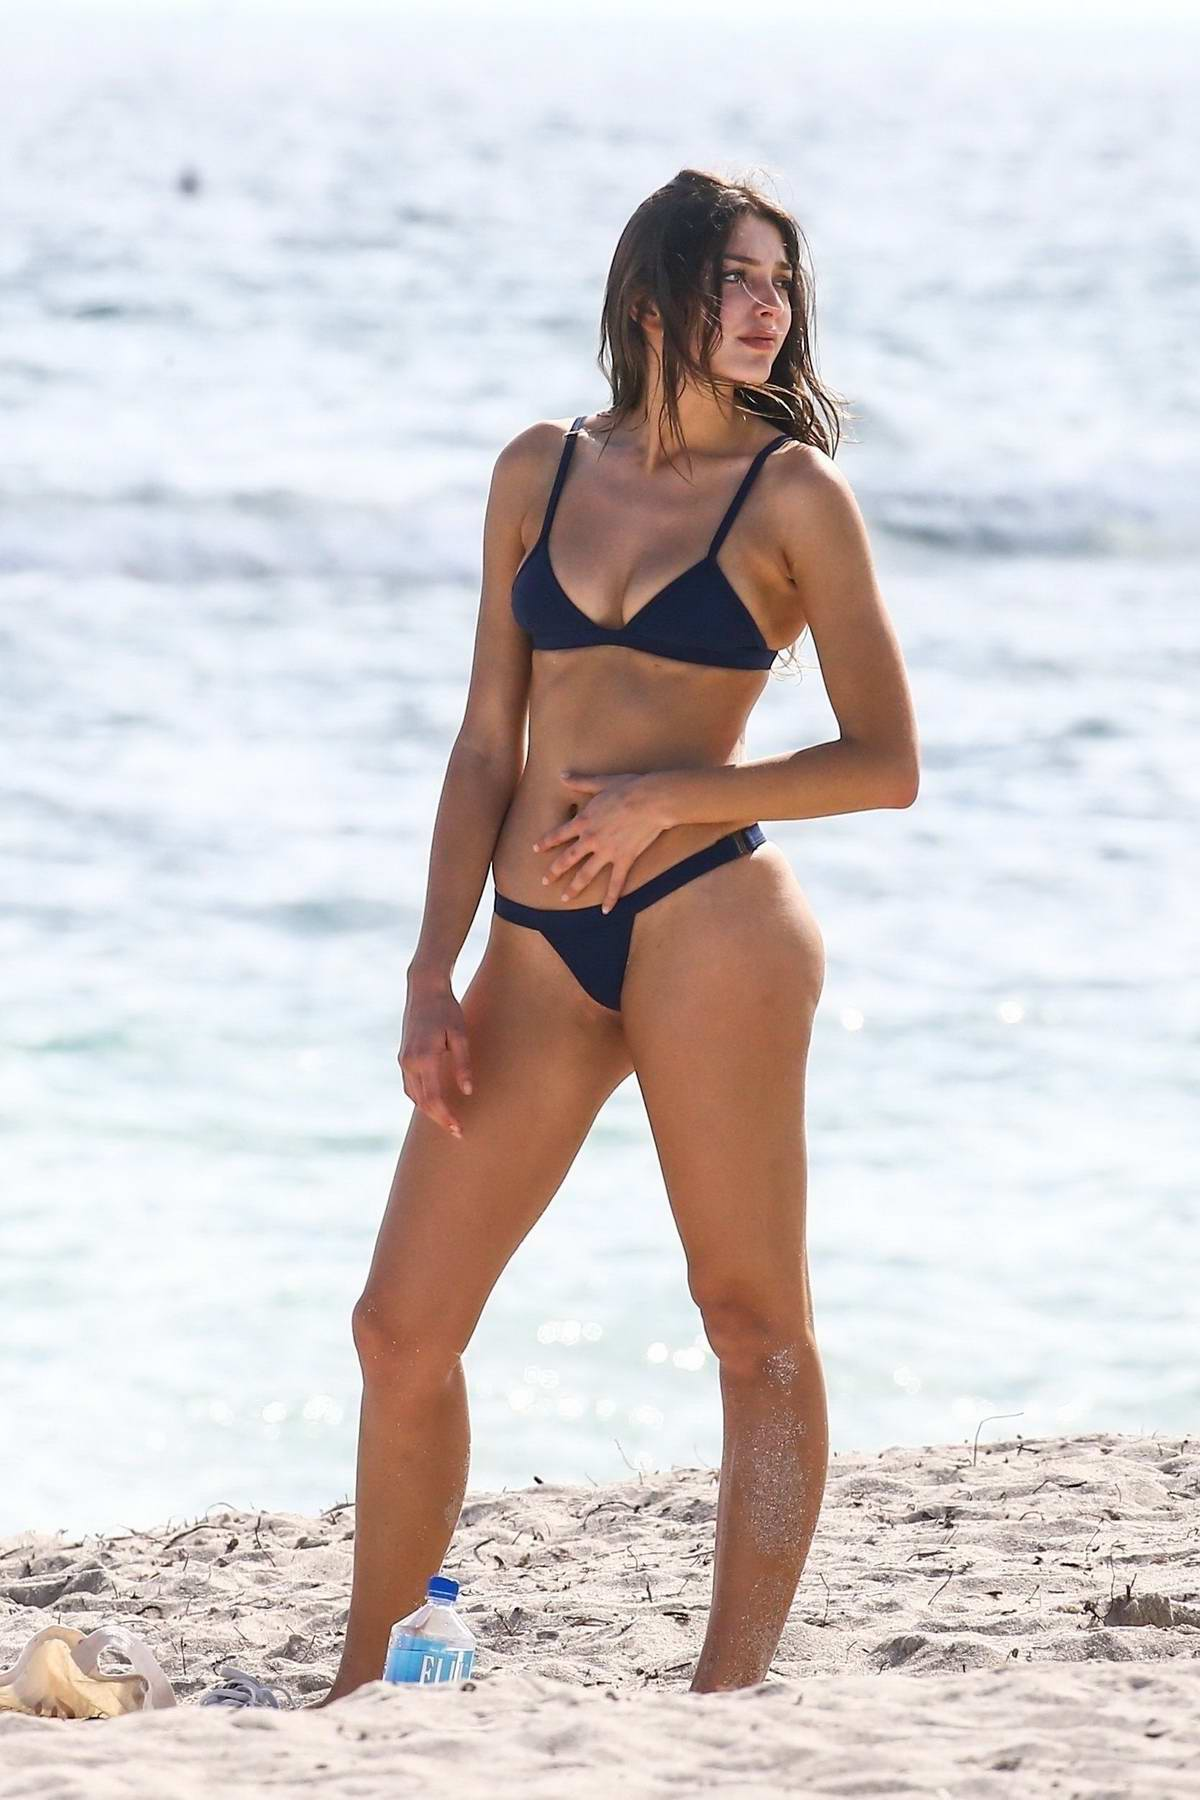 Celine Farach wearing a black bikini as she spends a day with her boyfriend at beach in Miami, Florida